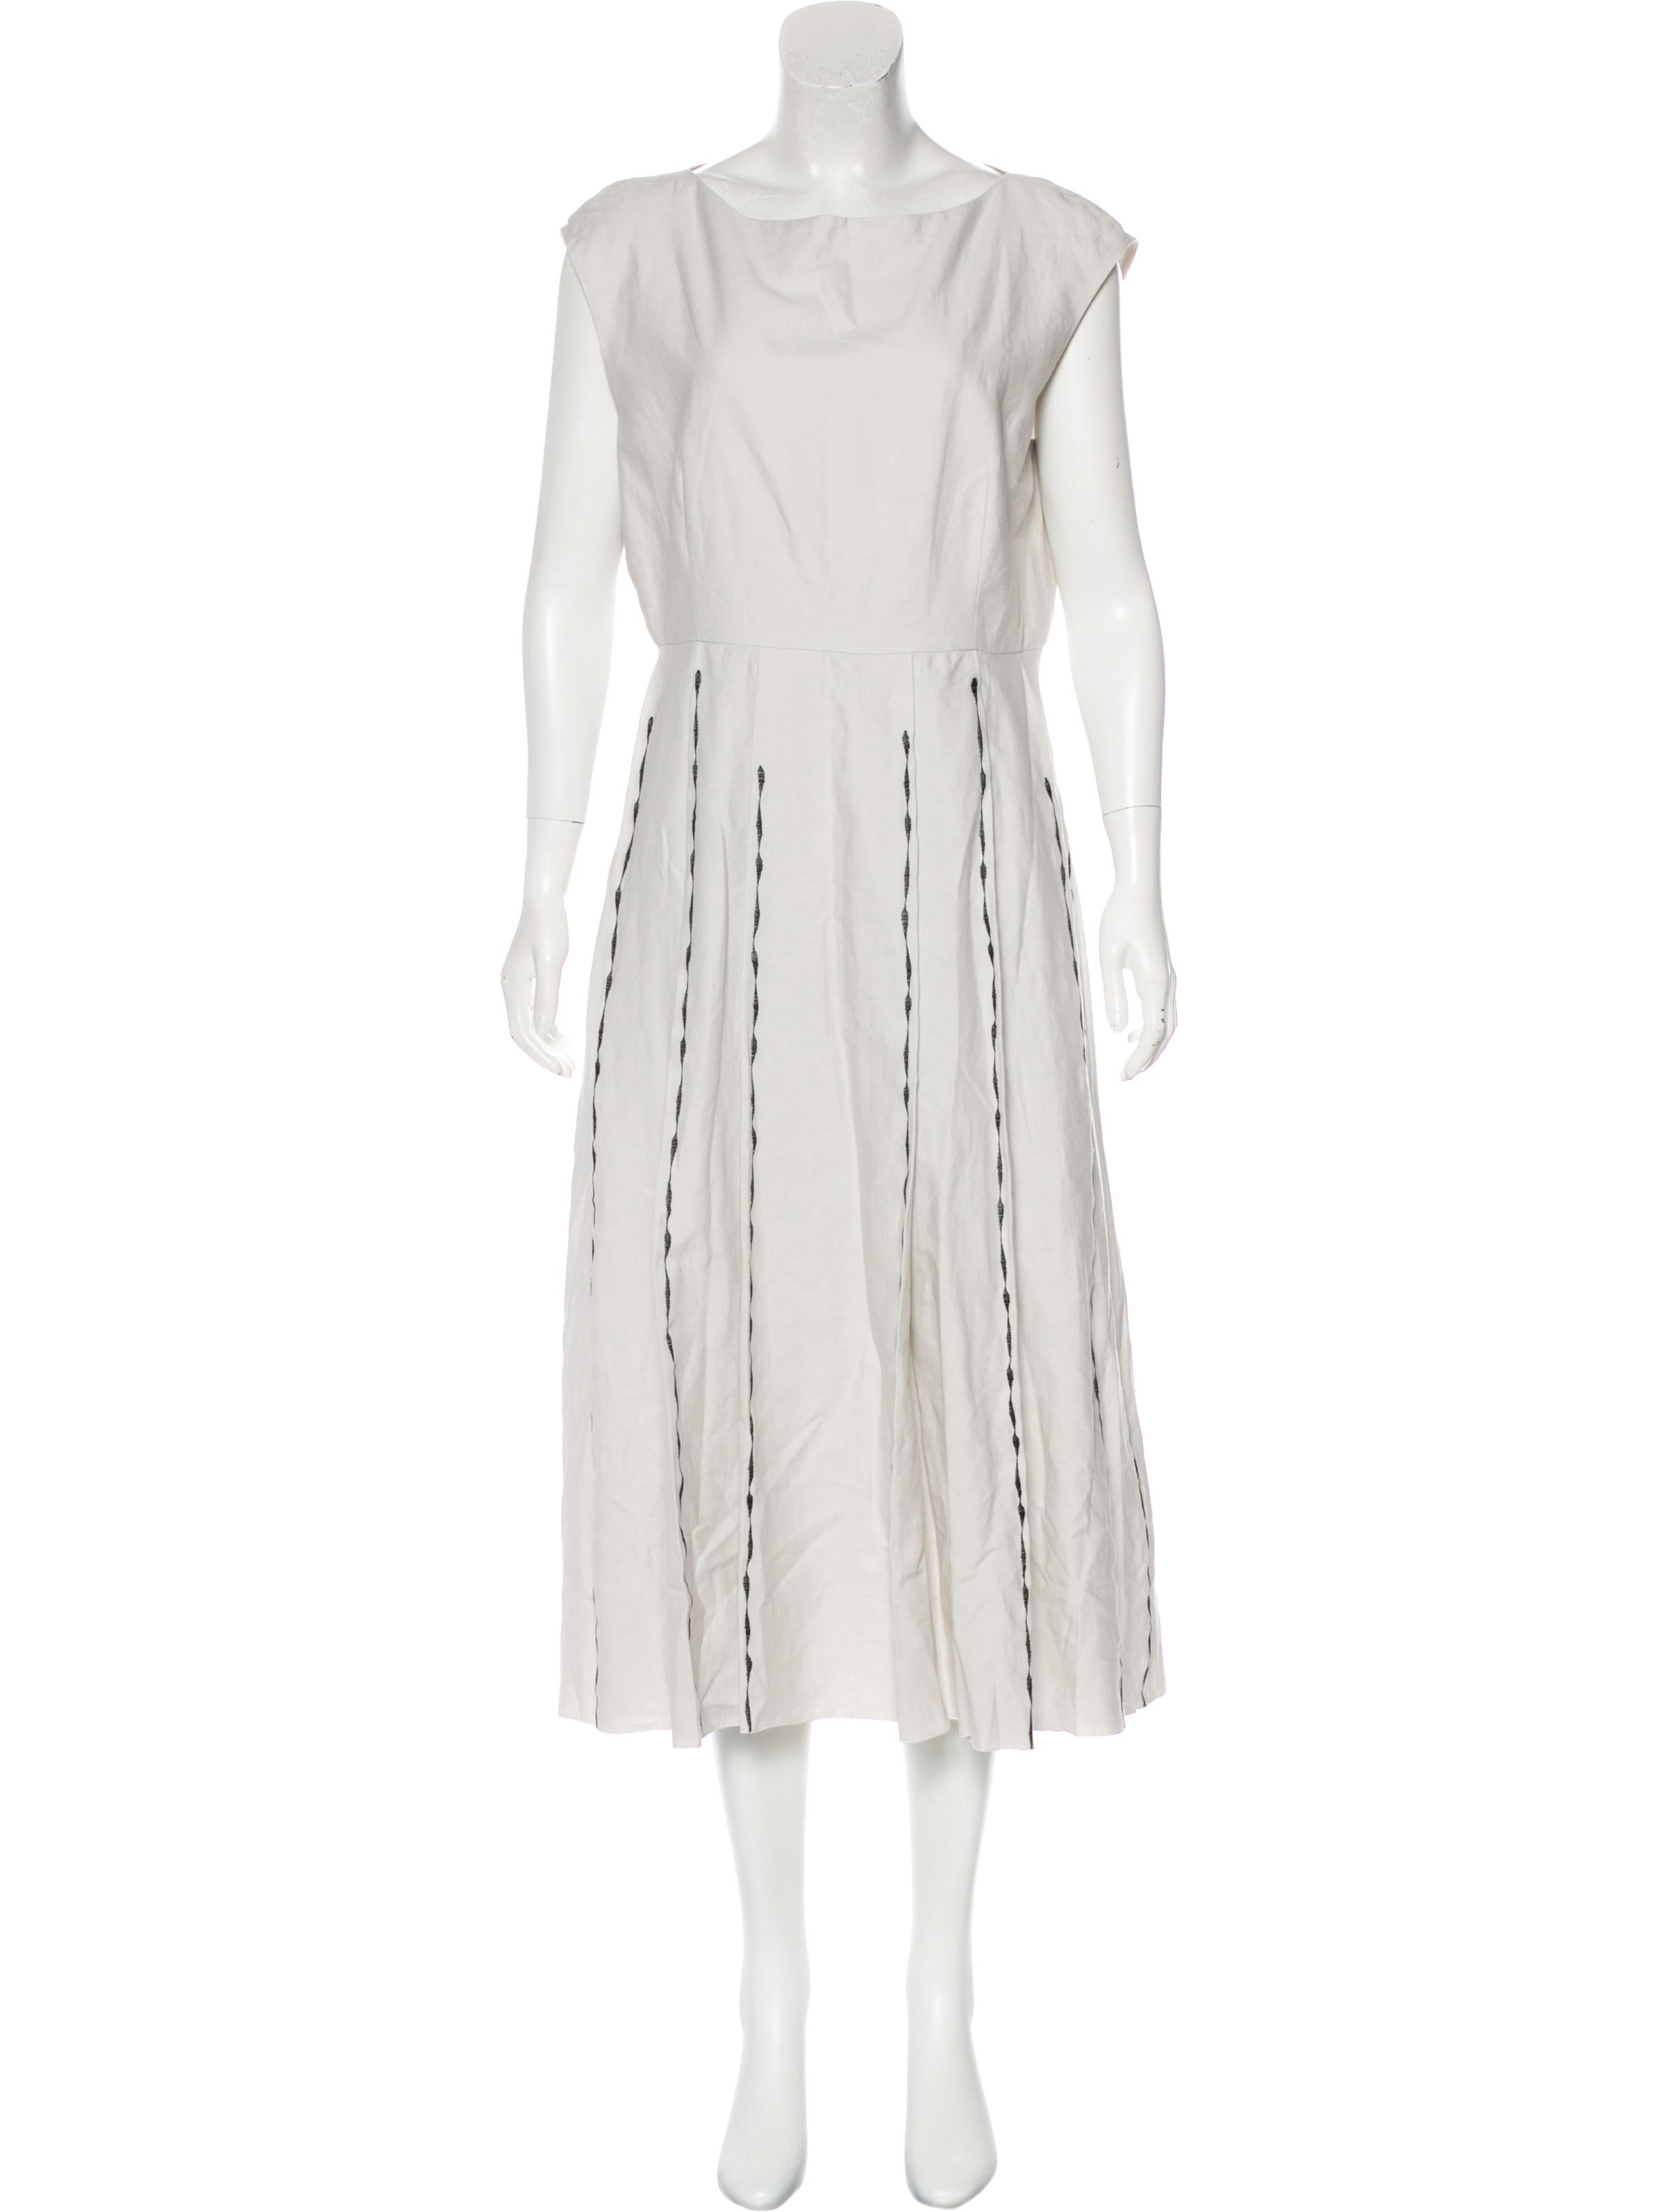 100% Guaranteed Cheap Online Bottega Veneta Linen-Blend Midi Dress w/ Tags Cheap Sale Pick A Best Cheap Price Factory Outlet Clearance Supply w8P6teINF